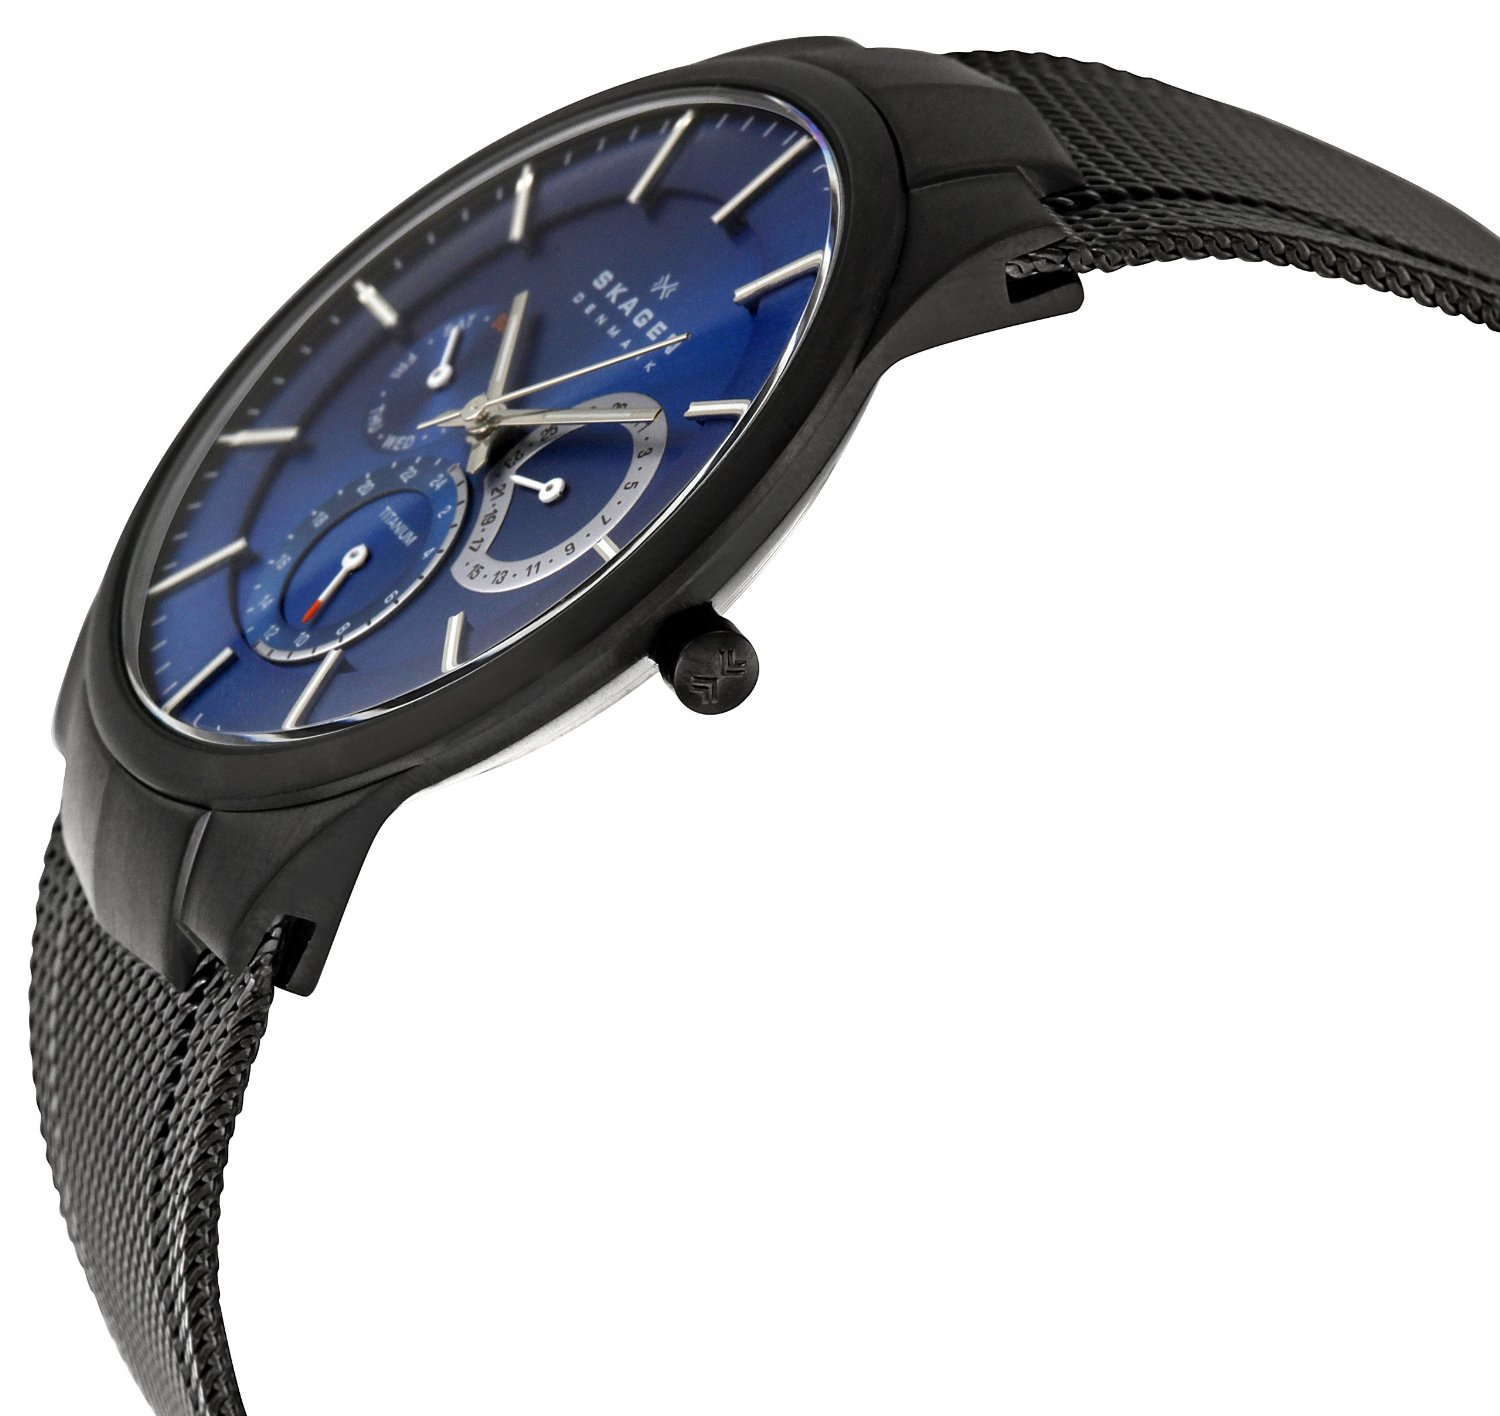 Watch Review - Skagen 809XLTBN Aktiv Titanium Blue Dial Watch